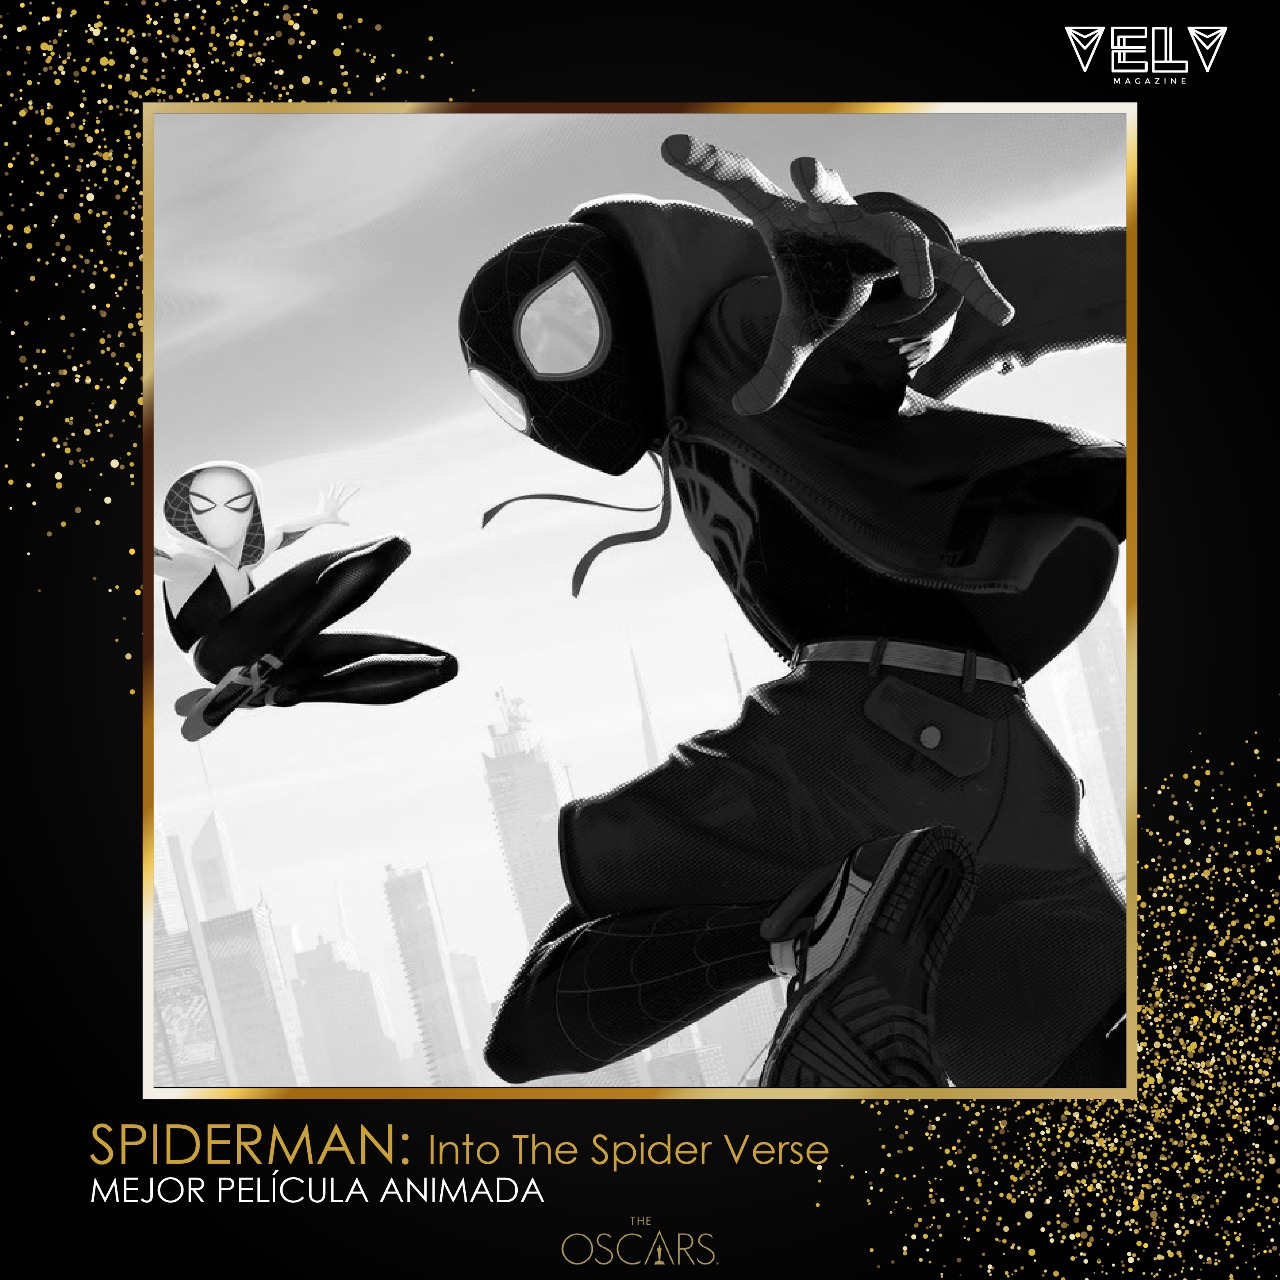 - Incredibles 2Isle of DogsMiraiRalph Breaks the InternetSpider-Man: Into the Spider-Verse